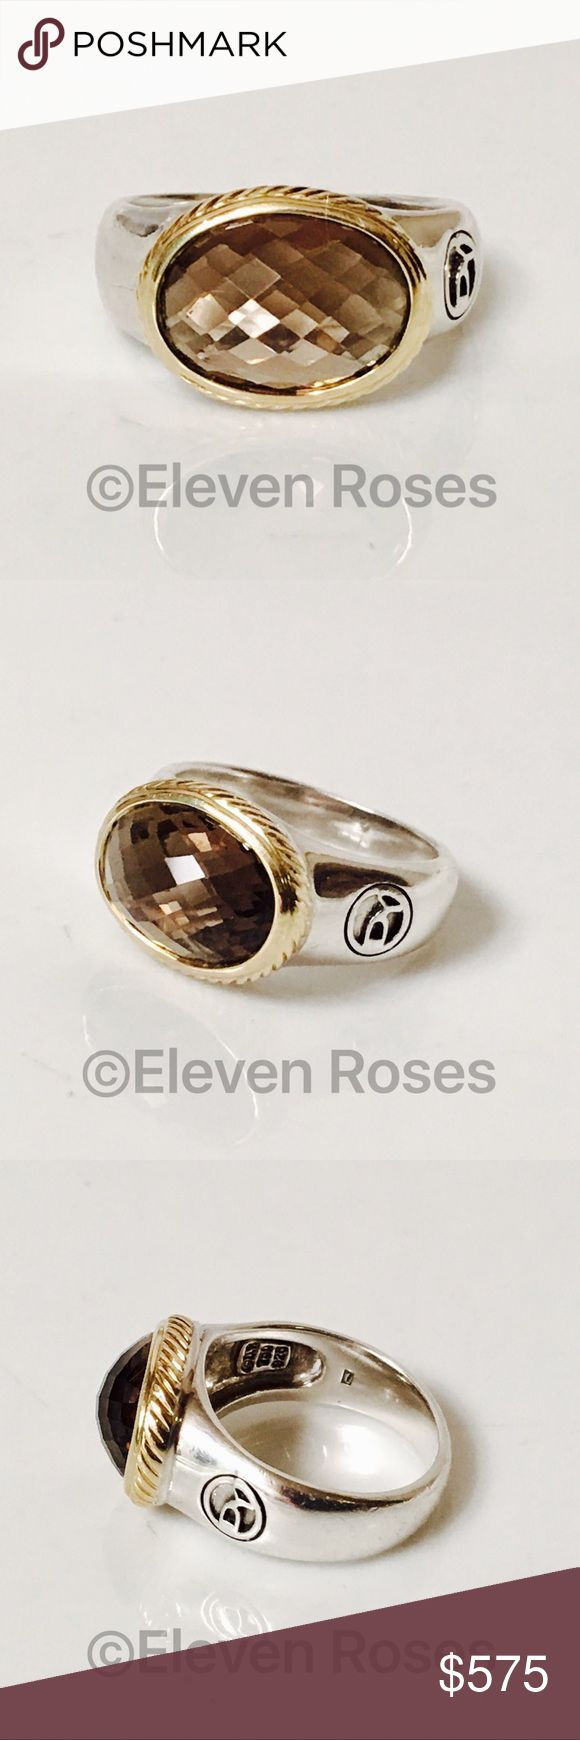 David Yurman Sterling & 18k Gold Smoky Quartz Ring David Yurman Smoky Quartz Ring - 925 Sterling Silver & 750 18k Yellow Gold - US Size 7 - Preowned / Preloved  💕 May Show Slight Signs Of Having Been Worn.   📷  Listing Images Are Of Actual Item Being Offered David Yurman Jewelry Rings